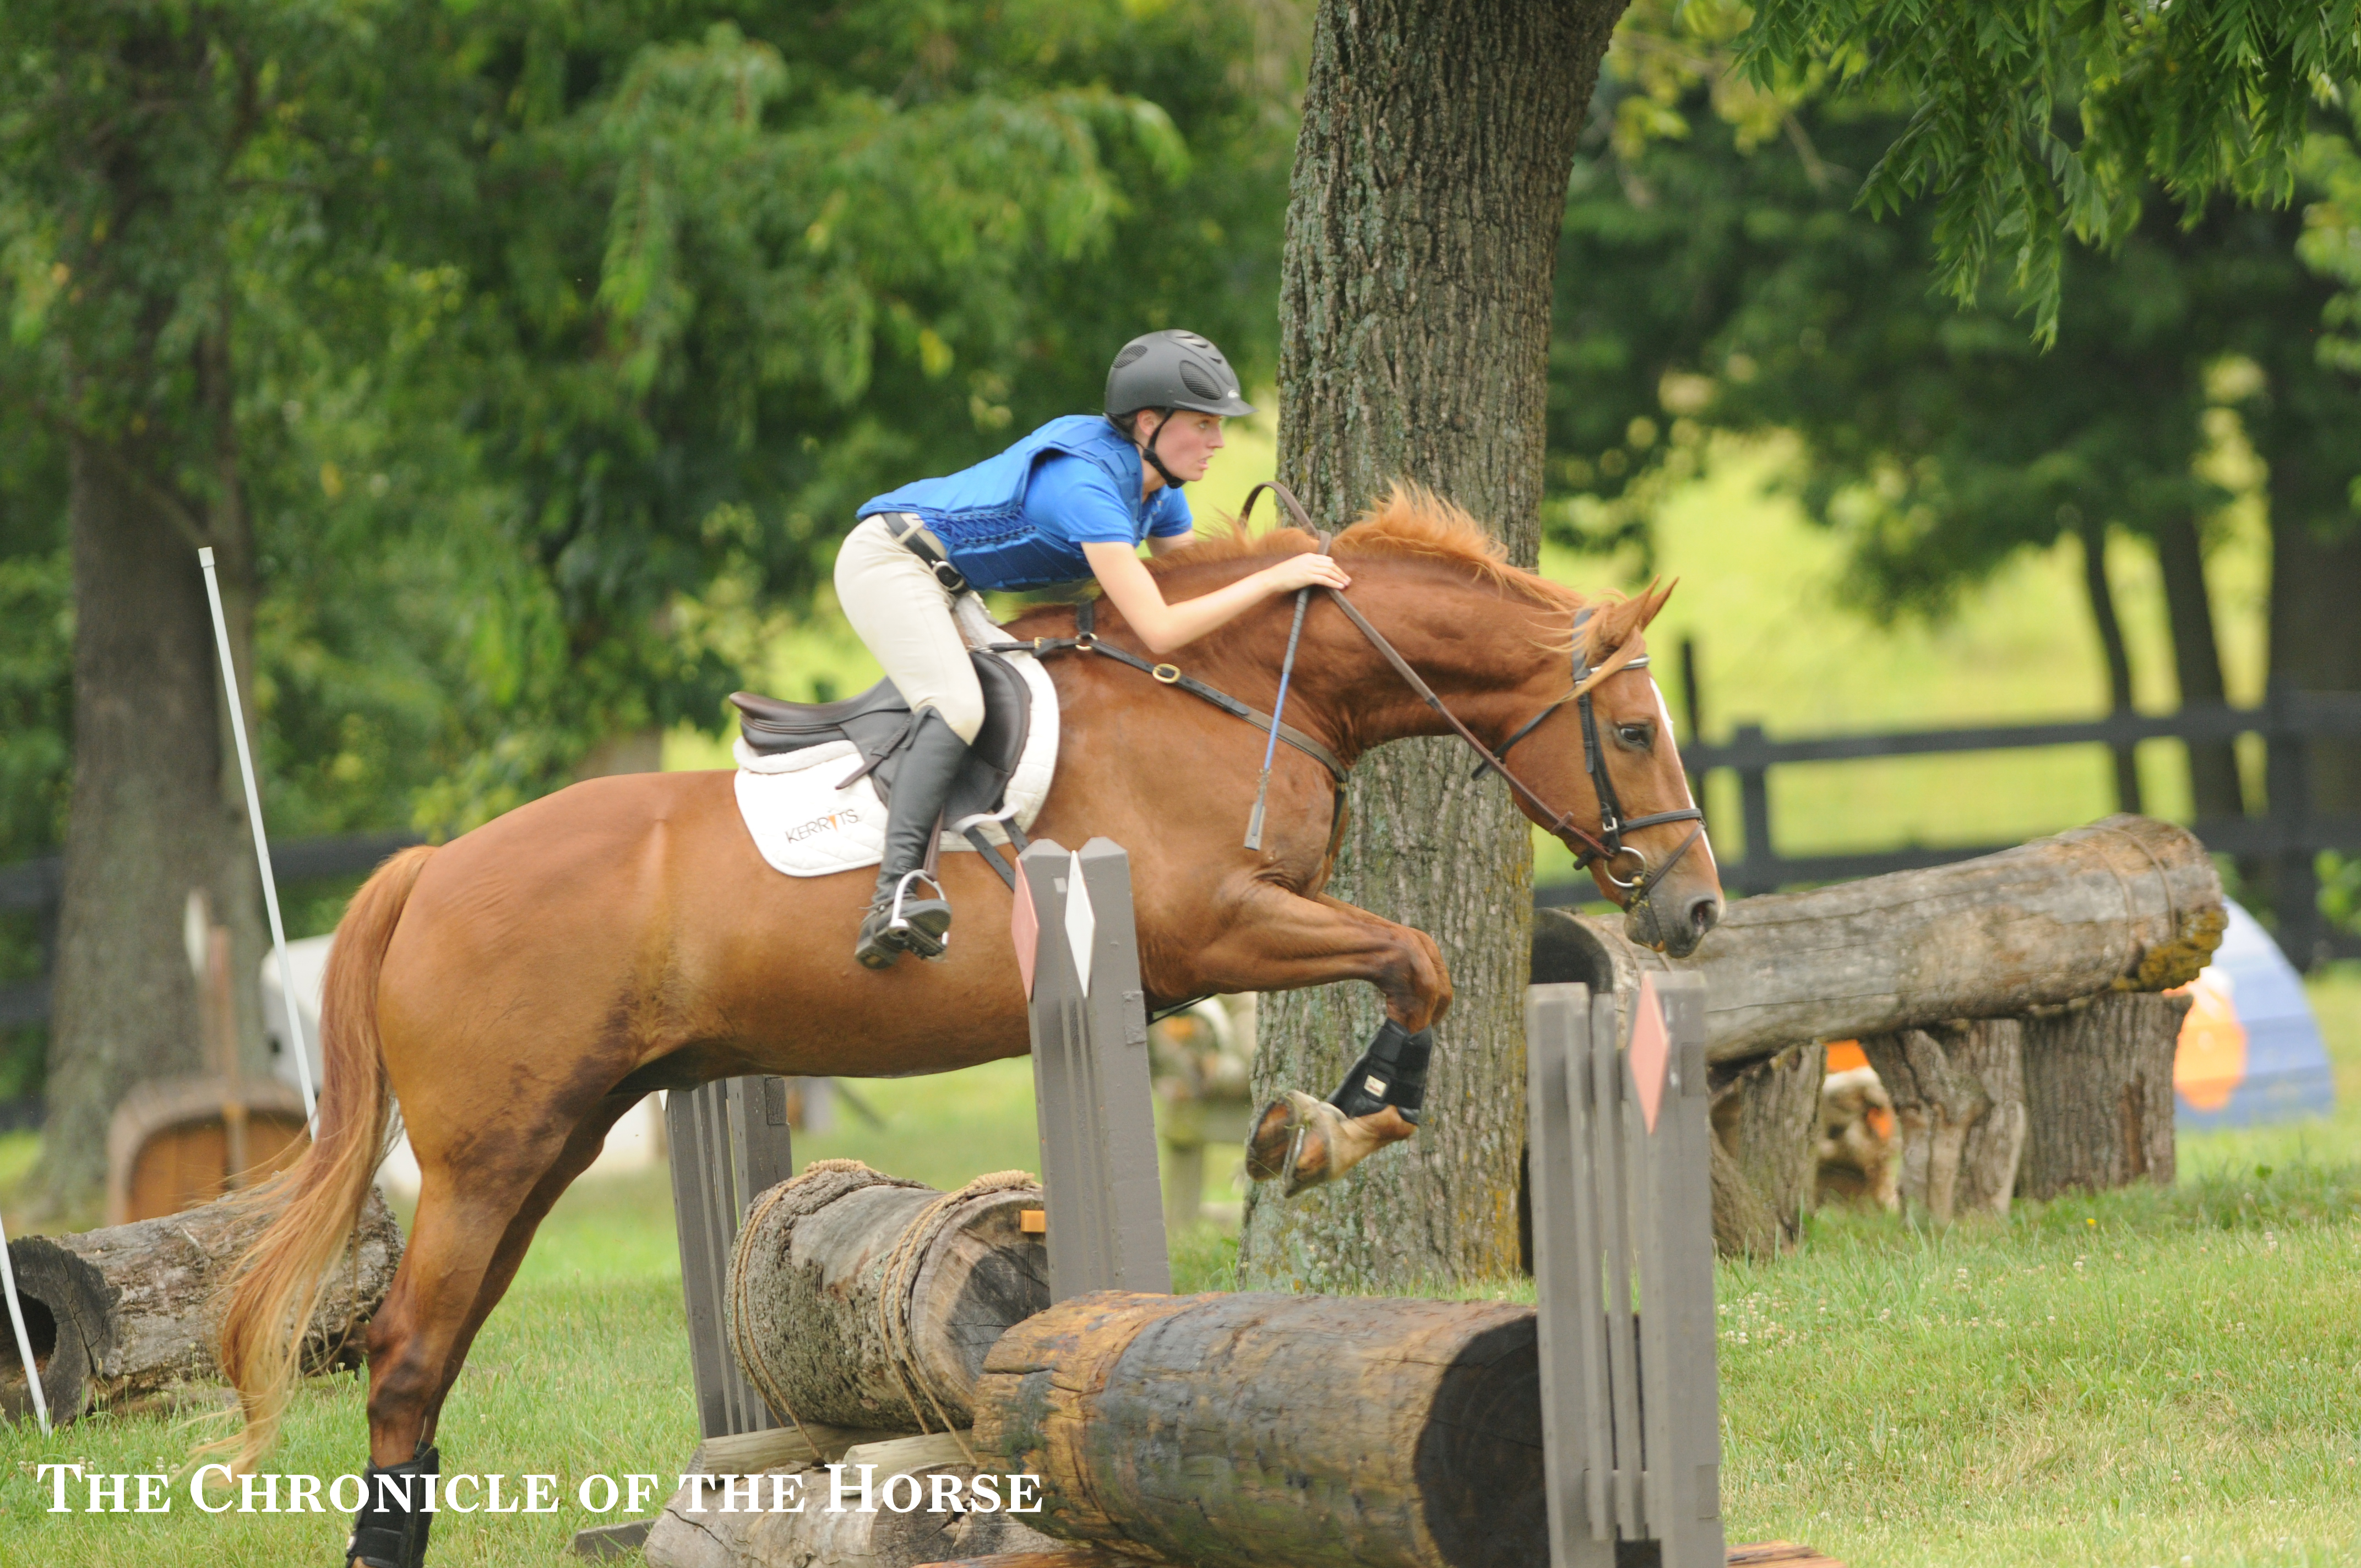 Horses jumping cross country - photo#47